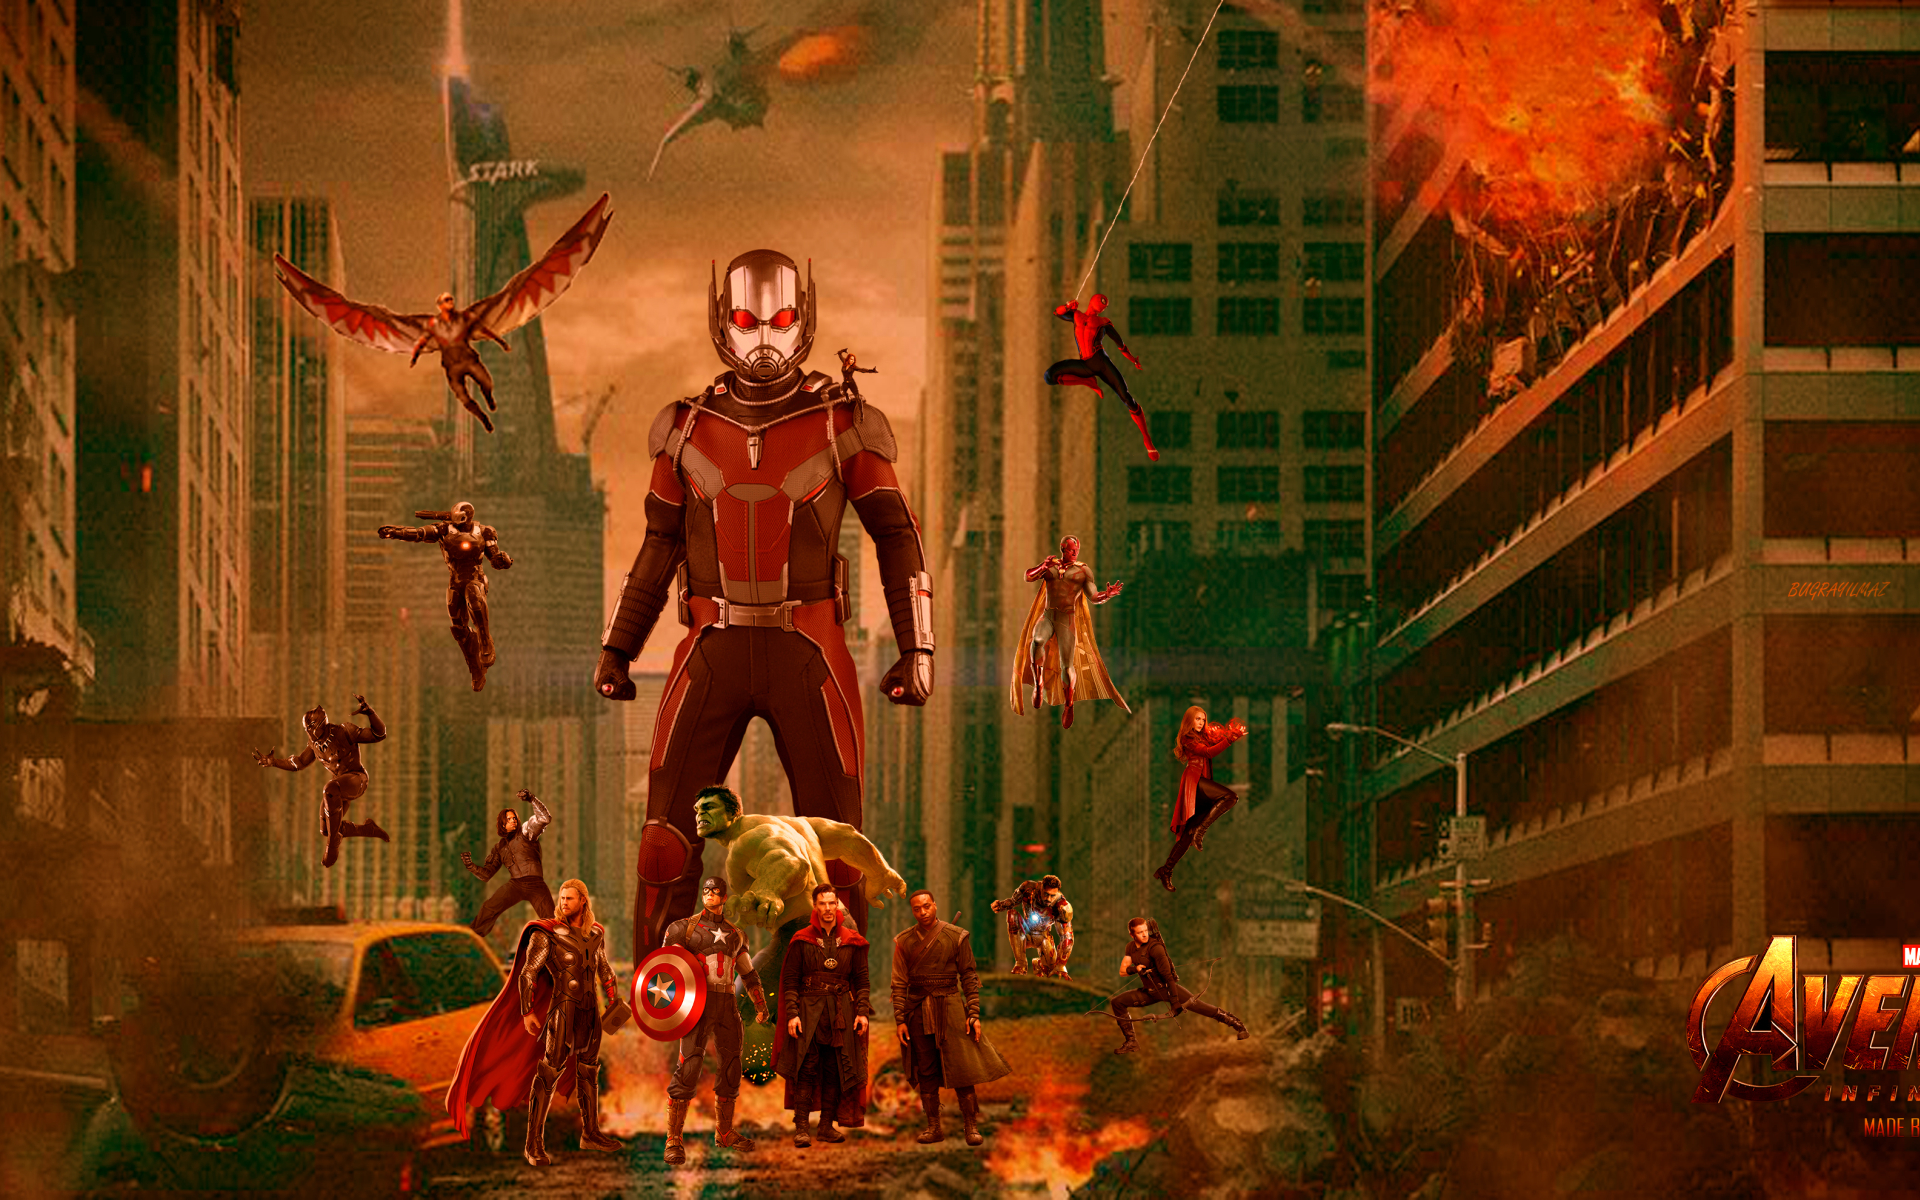 Download avengers infinity war fan art 7680x4320 - Fan wallpaper download ...